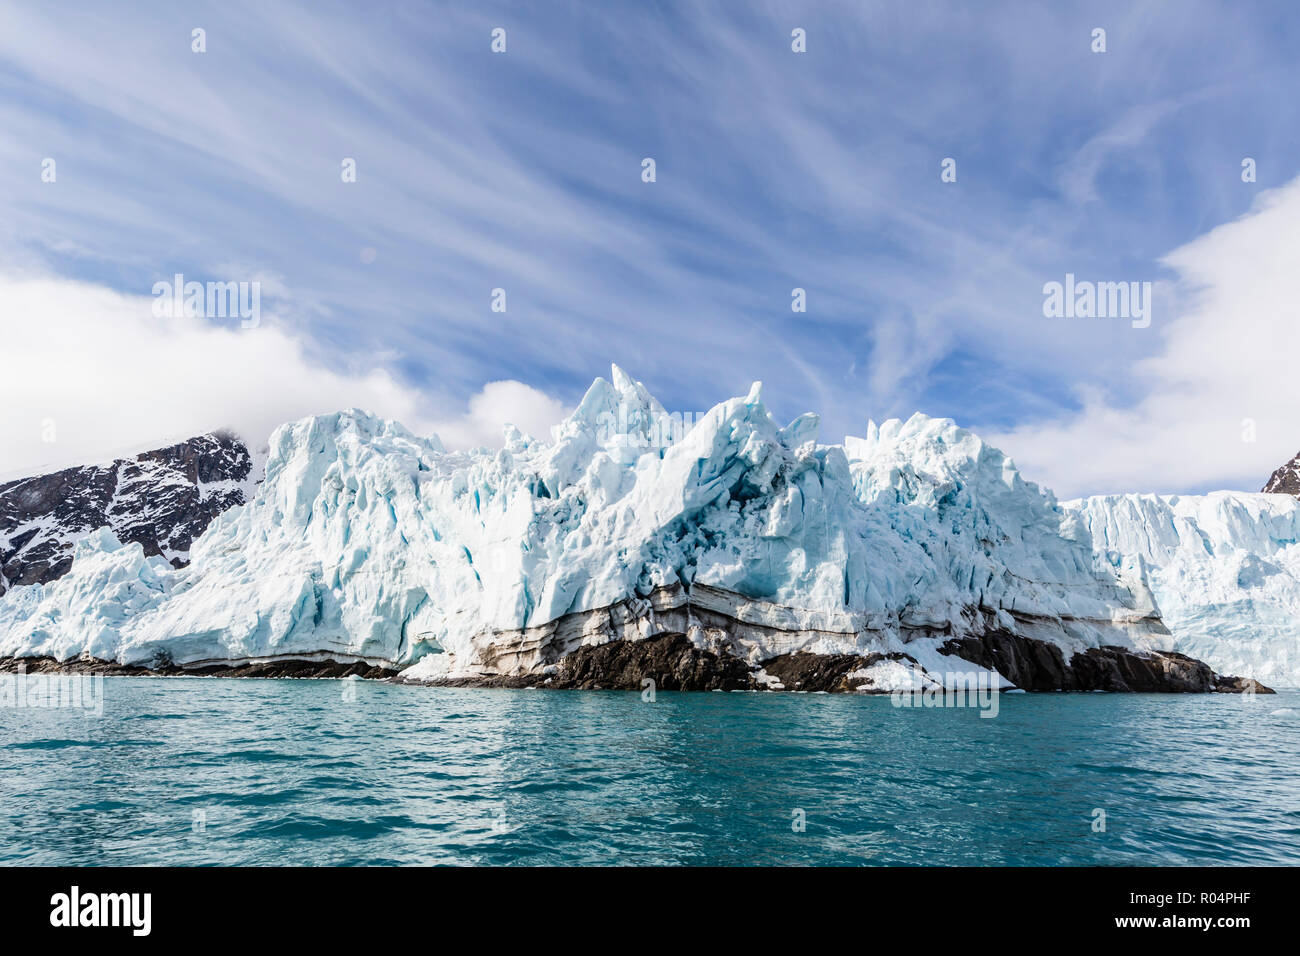 Monacobreen (Monaco Glacier) on the northeastern side of the island of Spitsbergen, Svalbard, Arctic, Norway, Europe - Stock Image